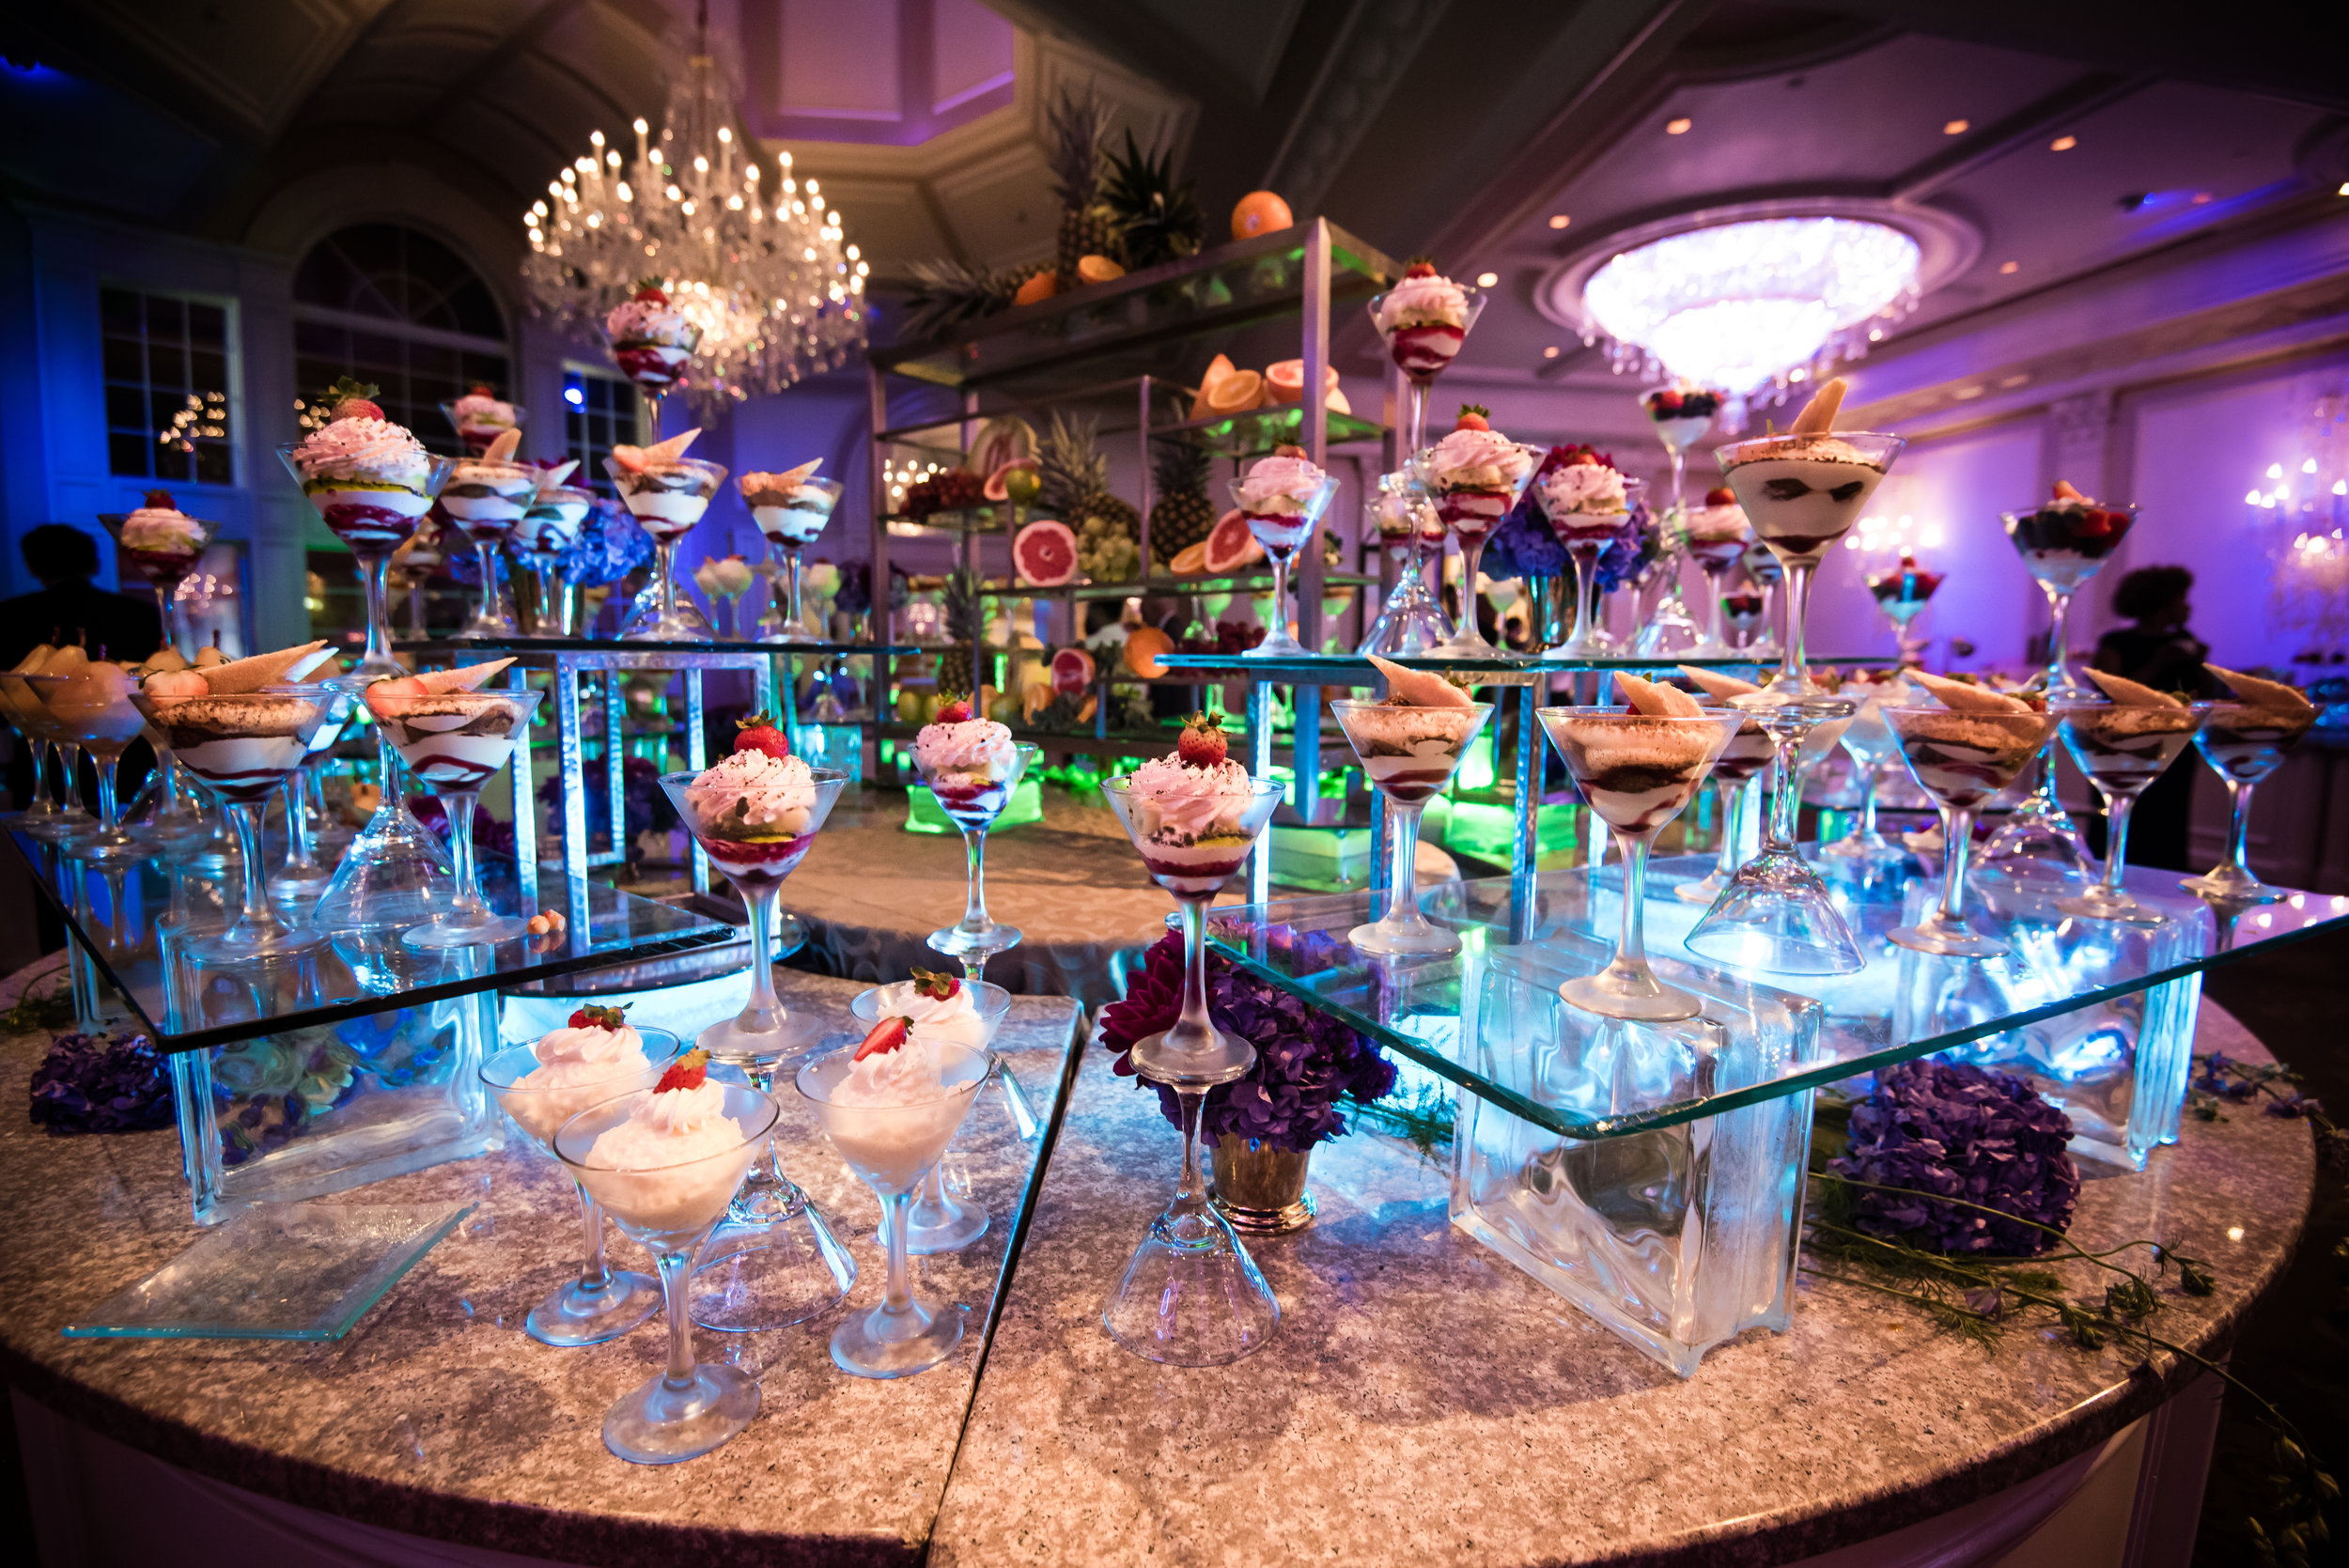 INDIAN WEDDING RECEPTION DESSERT TABLE.jpg